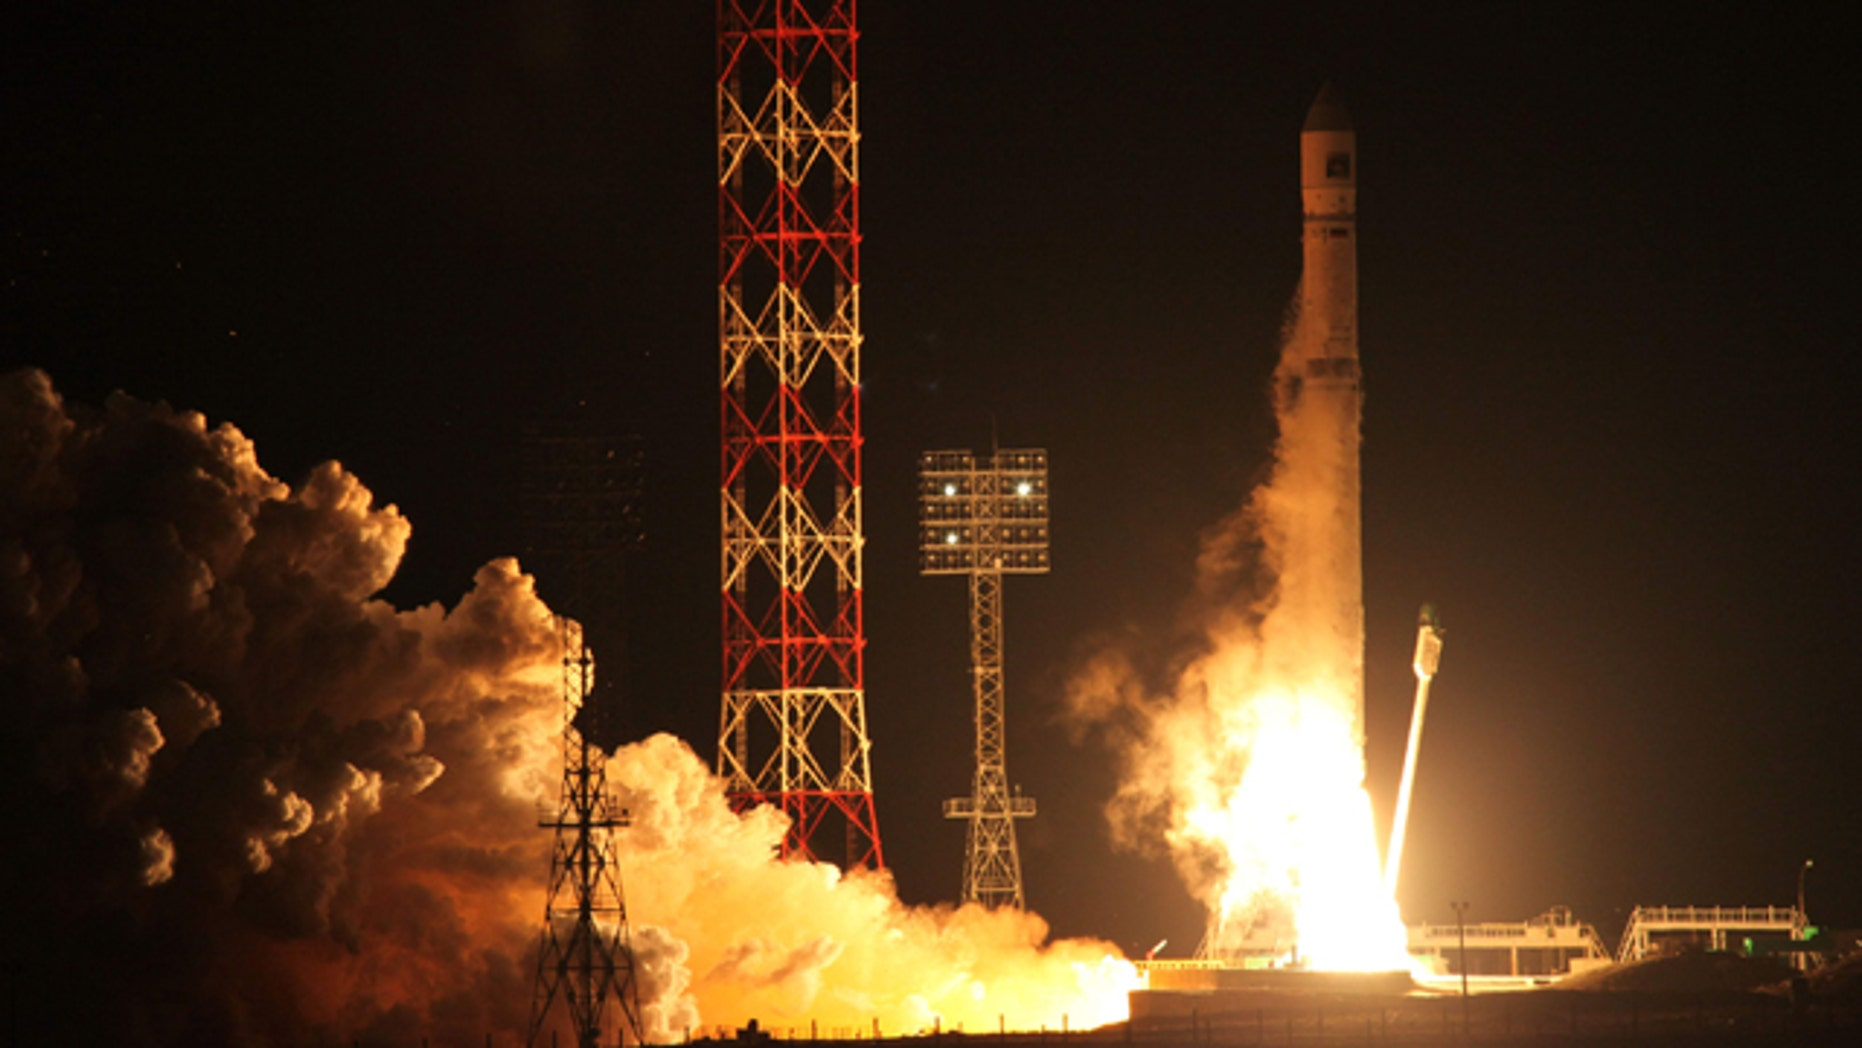 Nov. 9, 2011: FILE - In this file photo, the Zenit-2SB rocket with the Phobos-Ground probe blasts off from its launch pad at the Cosmodrome  Baikonur, Kazakhstan.